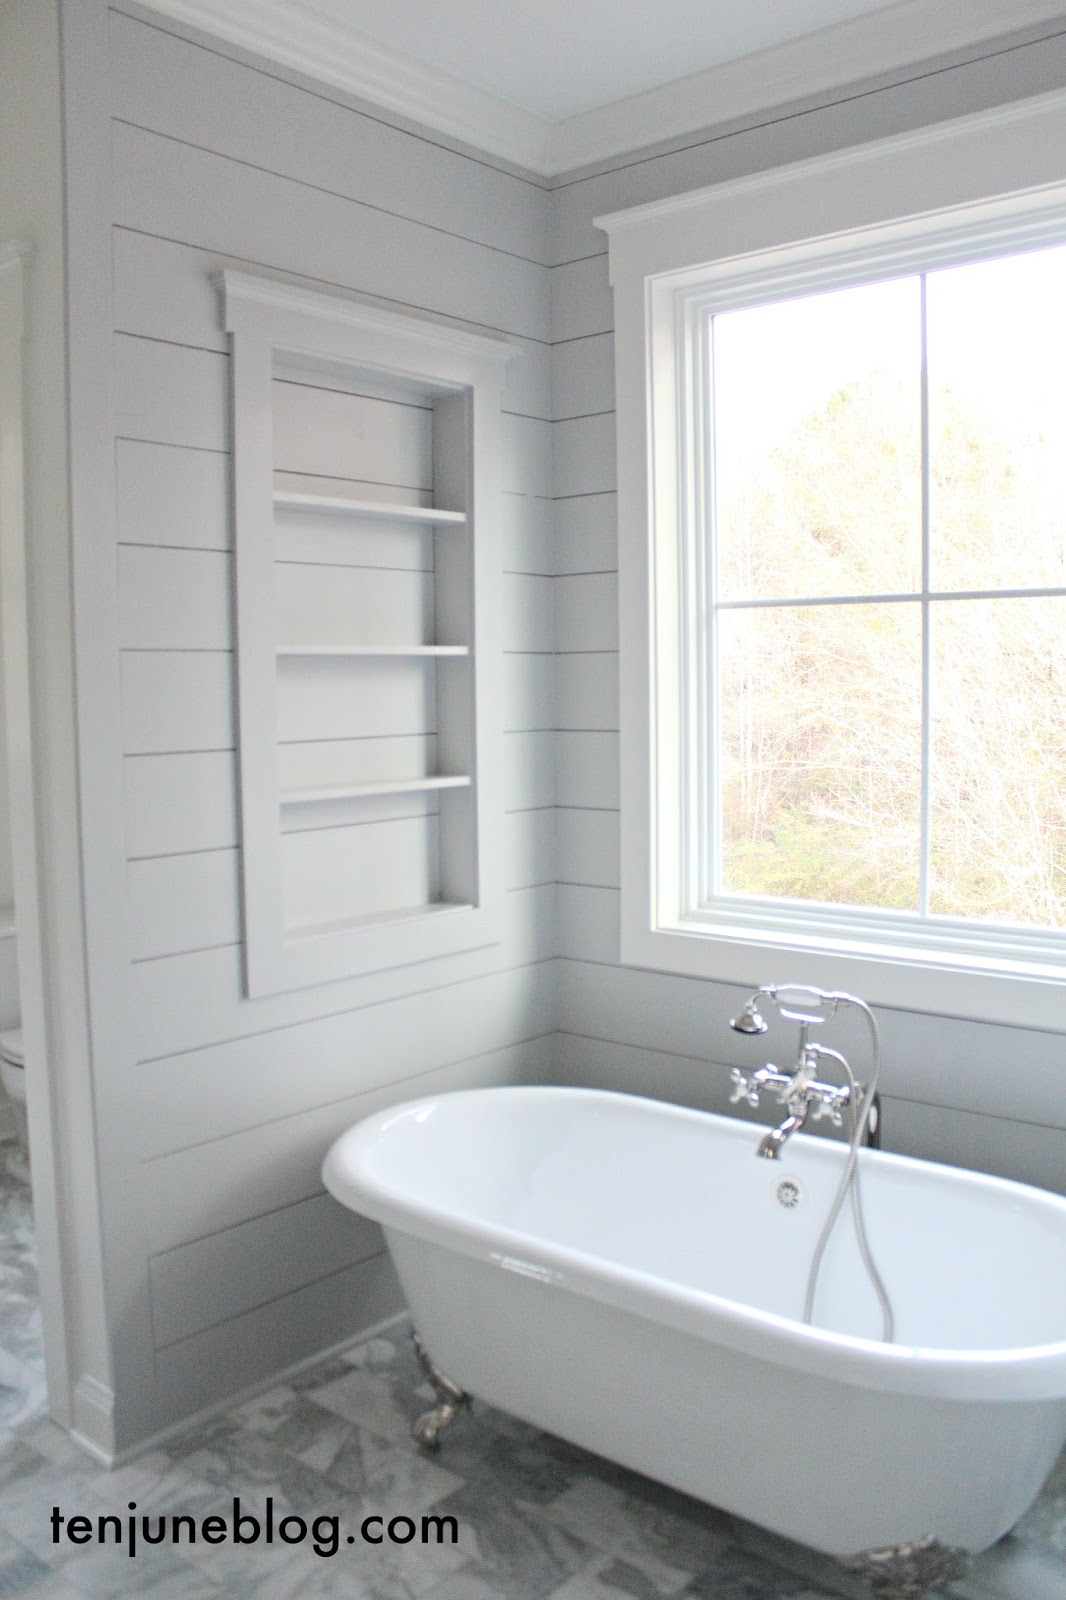 Ten June: The Farmhouse: A Tour of the Master Bathroom